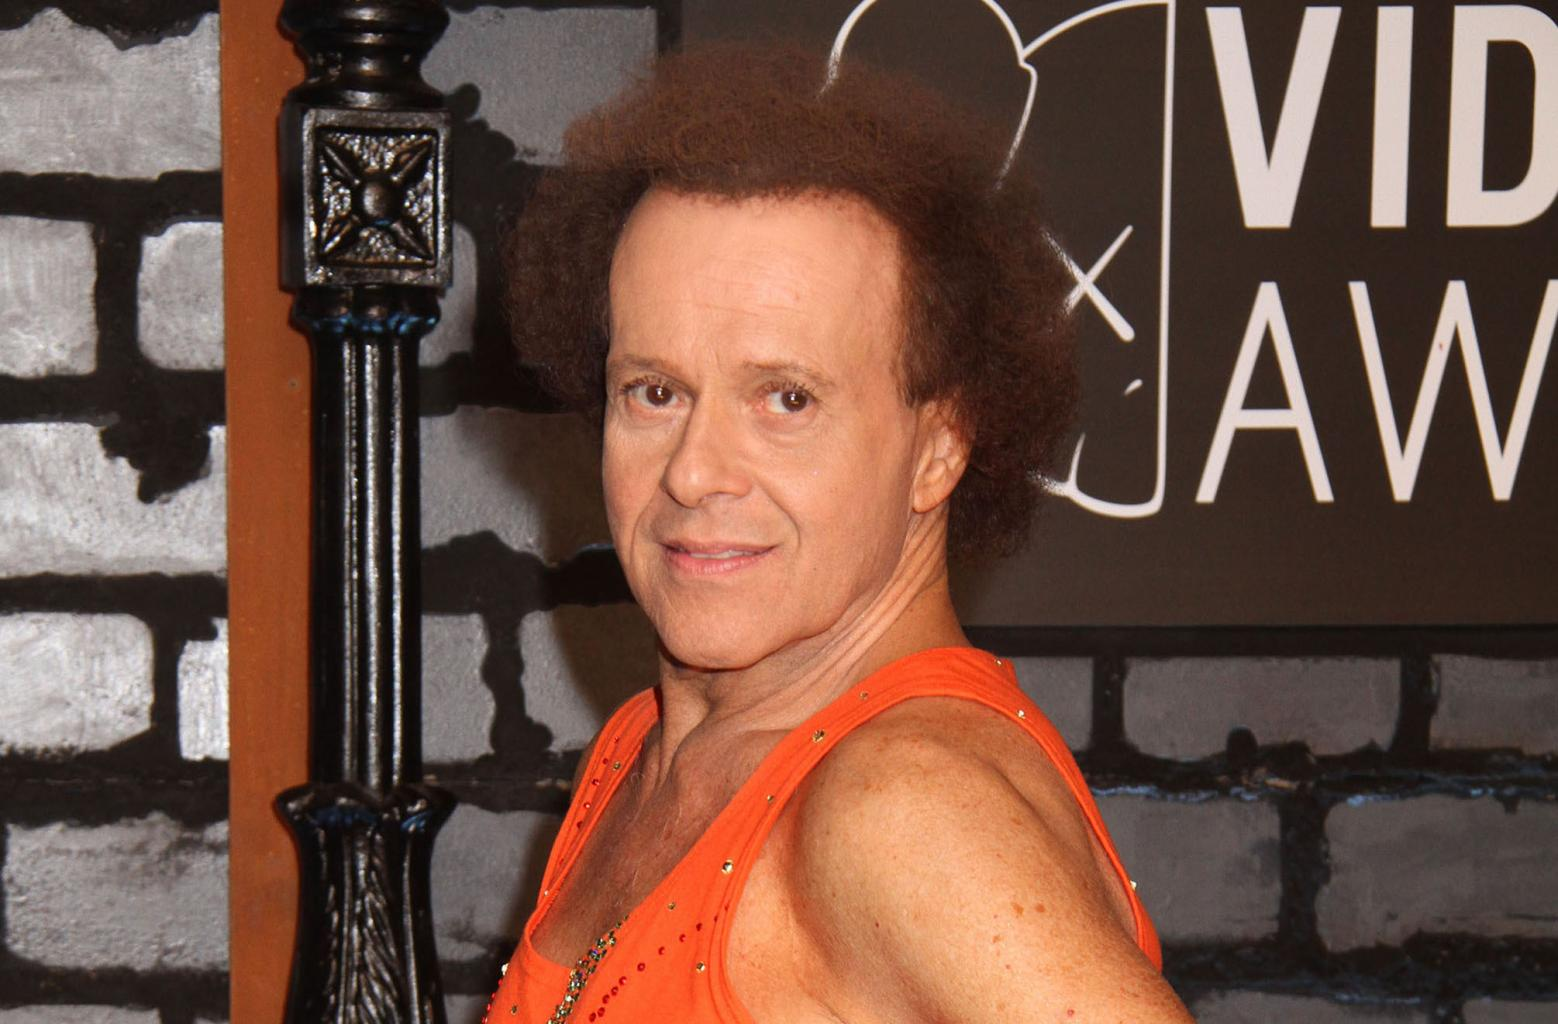 Richard Simmons' Reclusiveness Due To Knee Injury, Claims Friend, Insists He's 'Perfect'